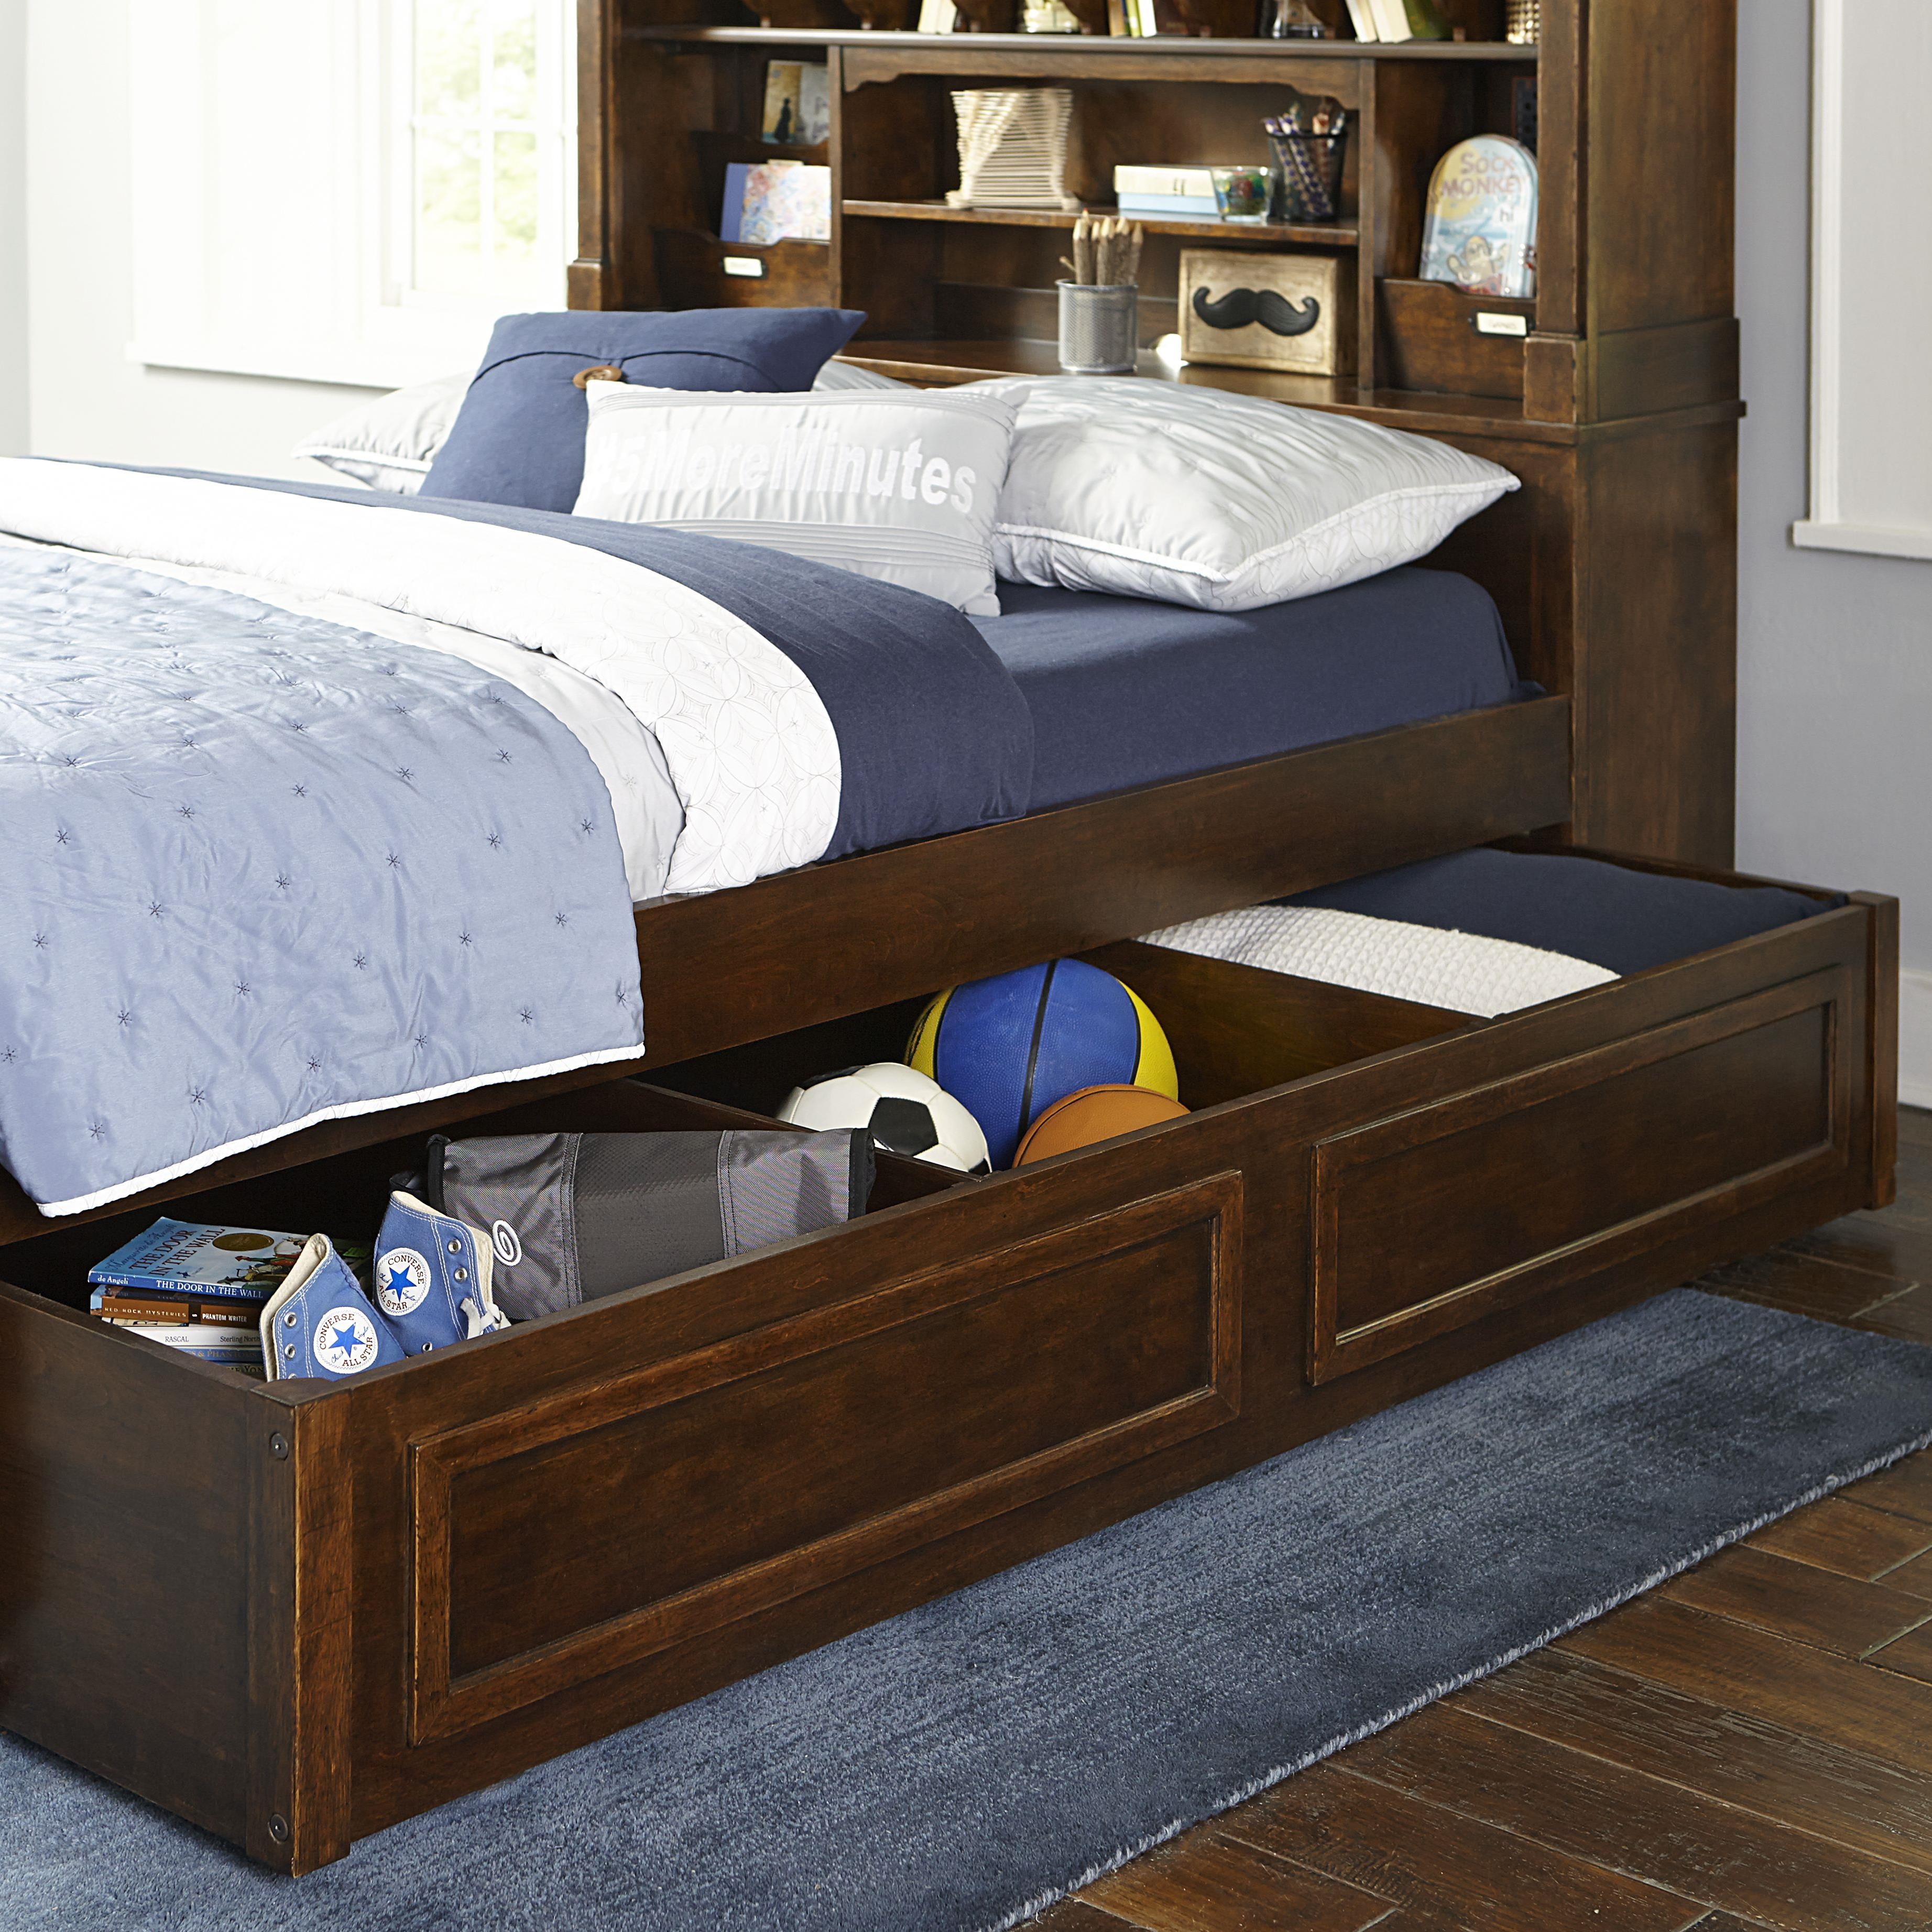 Legacy Classic Kids Big Sur by Wendy Bellissimo Full Bookcase Bed - Item Number: 4920-4804K+9500